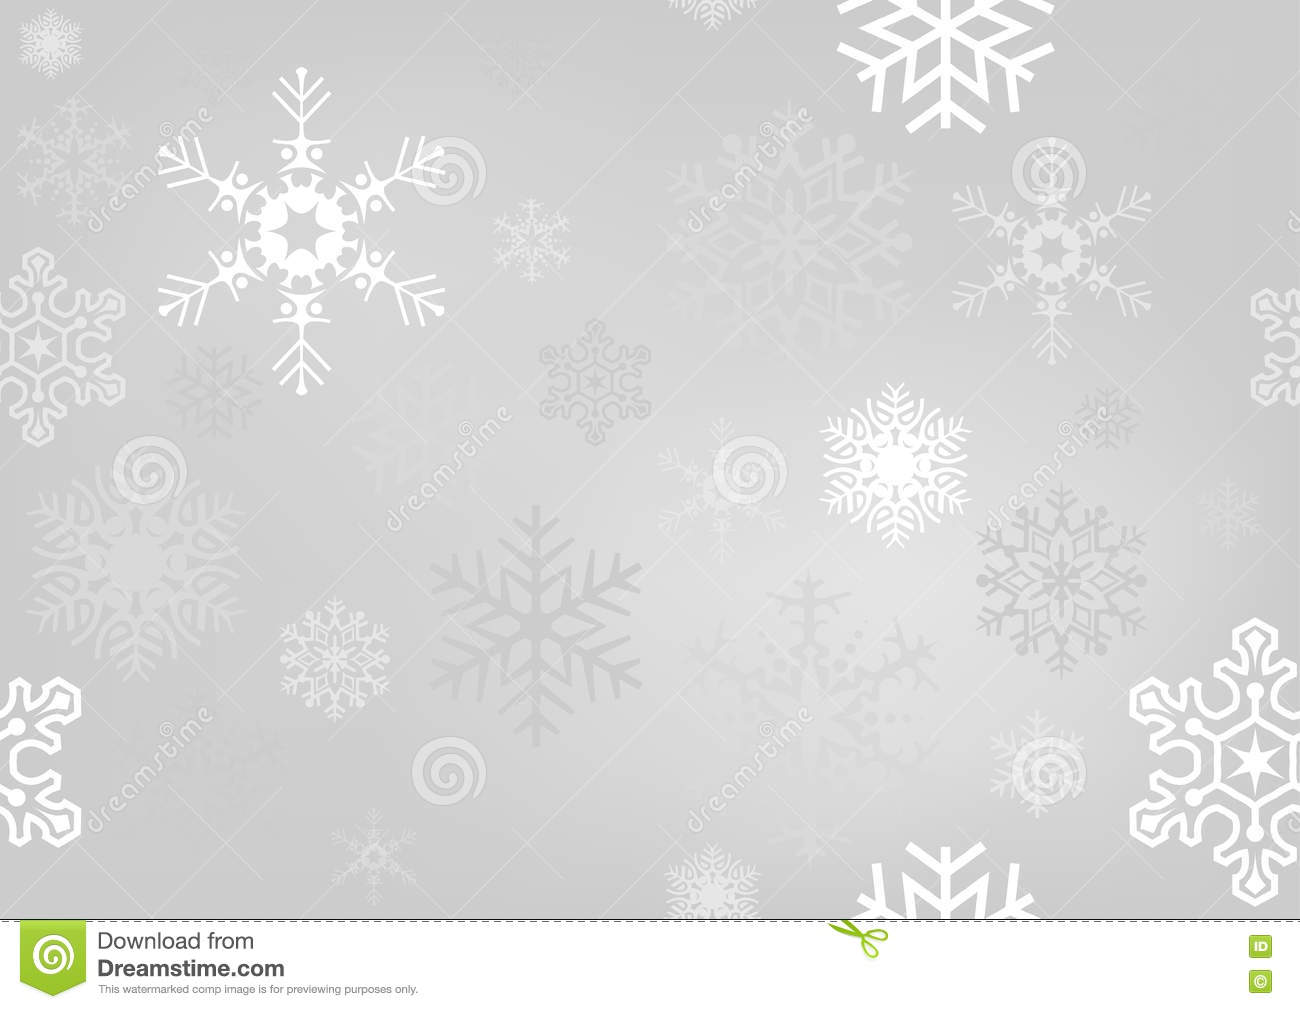 Christmas Wallpaper Snow Falling Silver Christmas Paper With Snowflakes Stock Vector